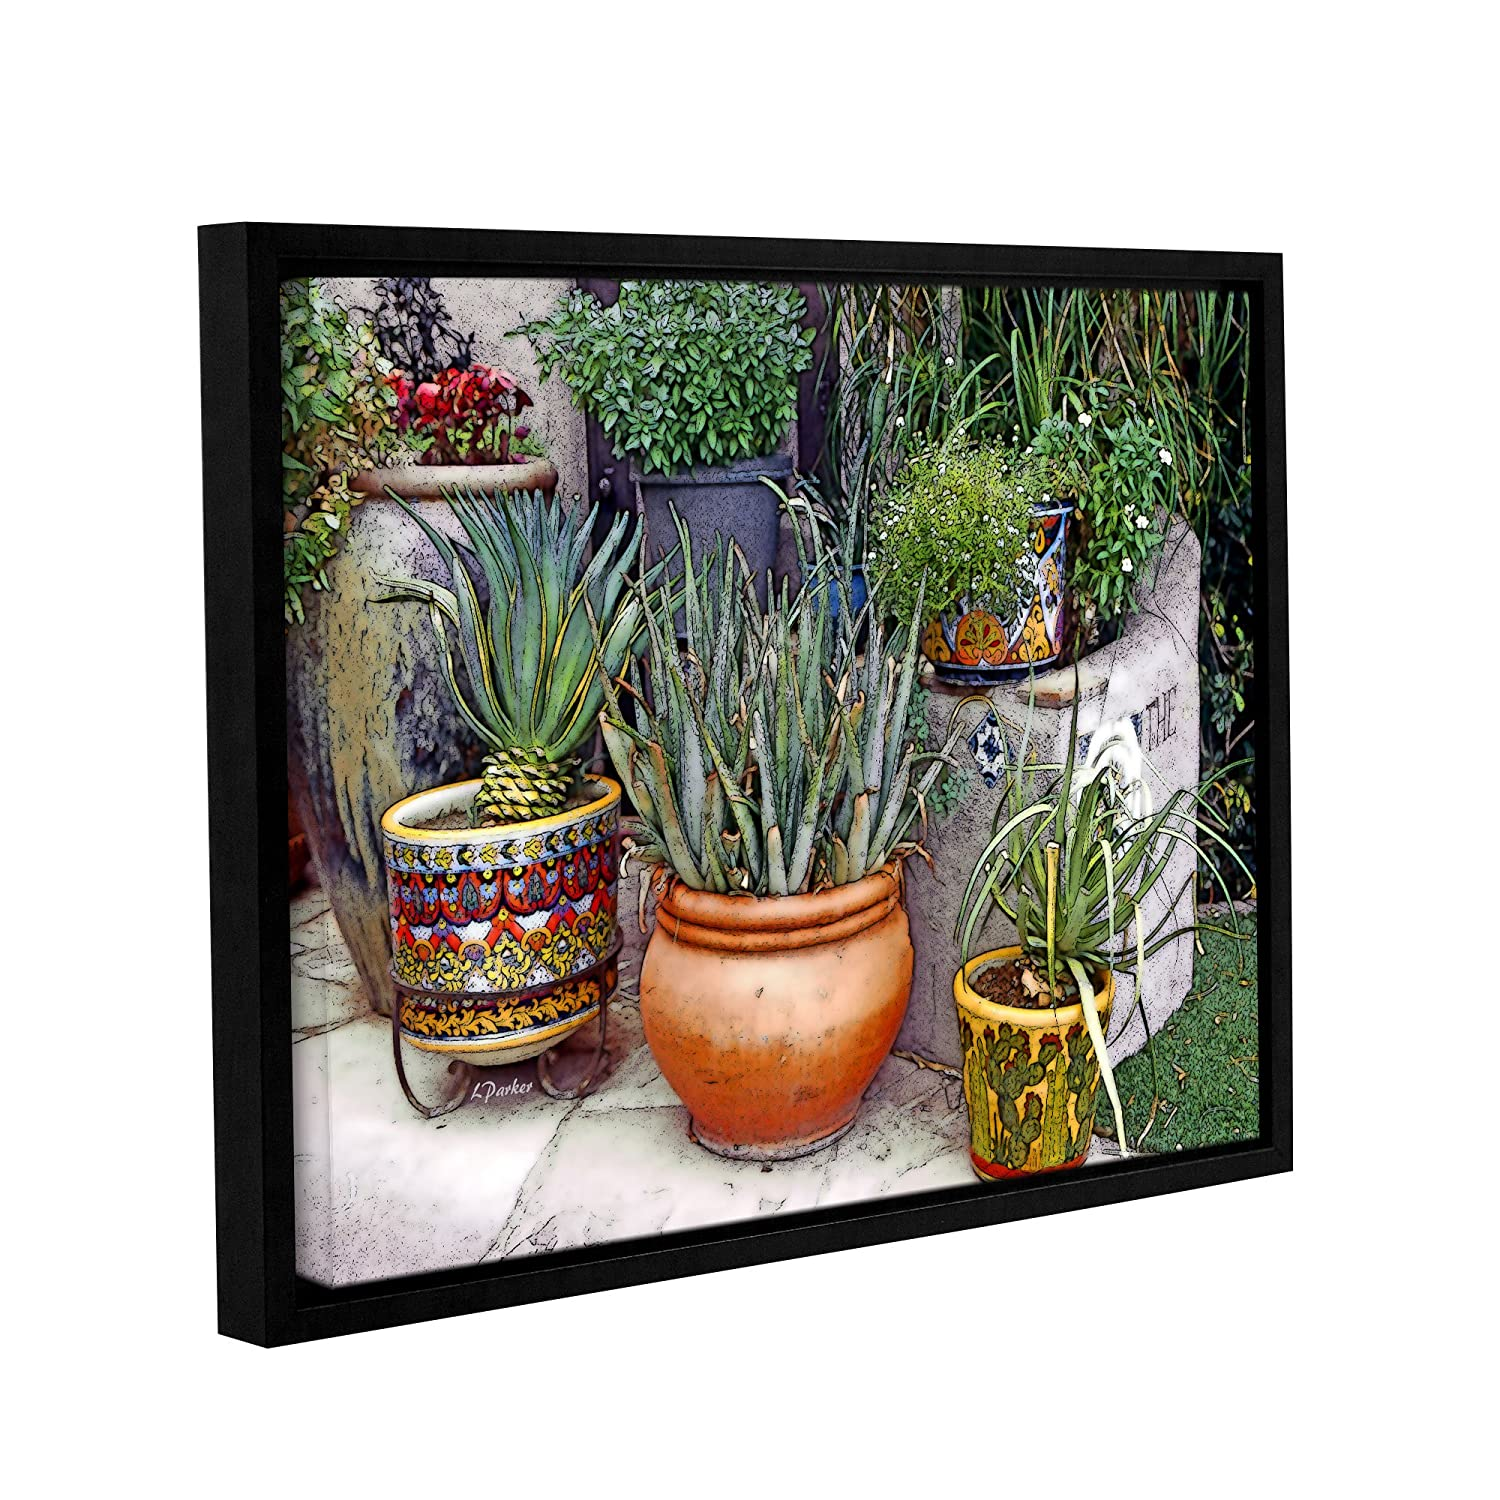 ArtWall Linda Parkers Southwest Potted Garden Gallery Wrapped Floater-Framed Canvas 24 x 32 24 x 32 0par119a2432f